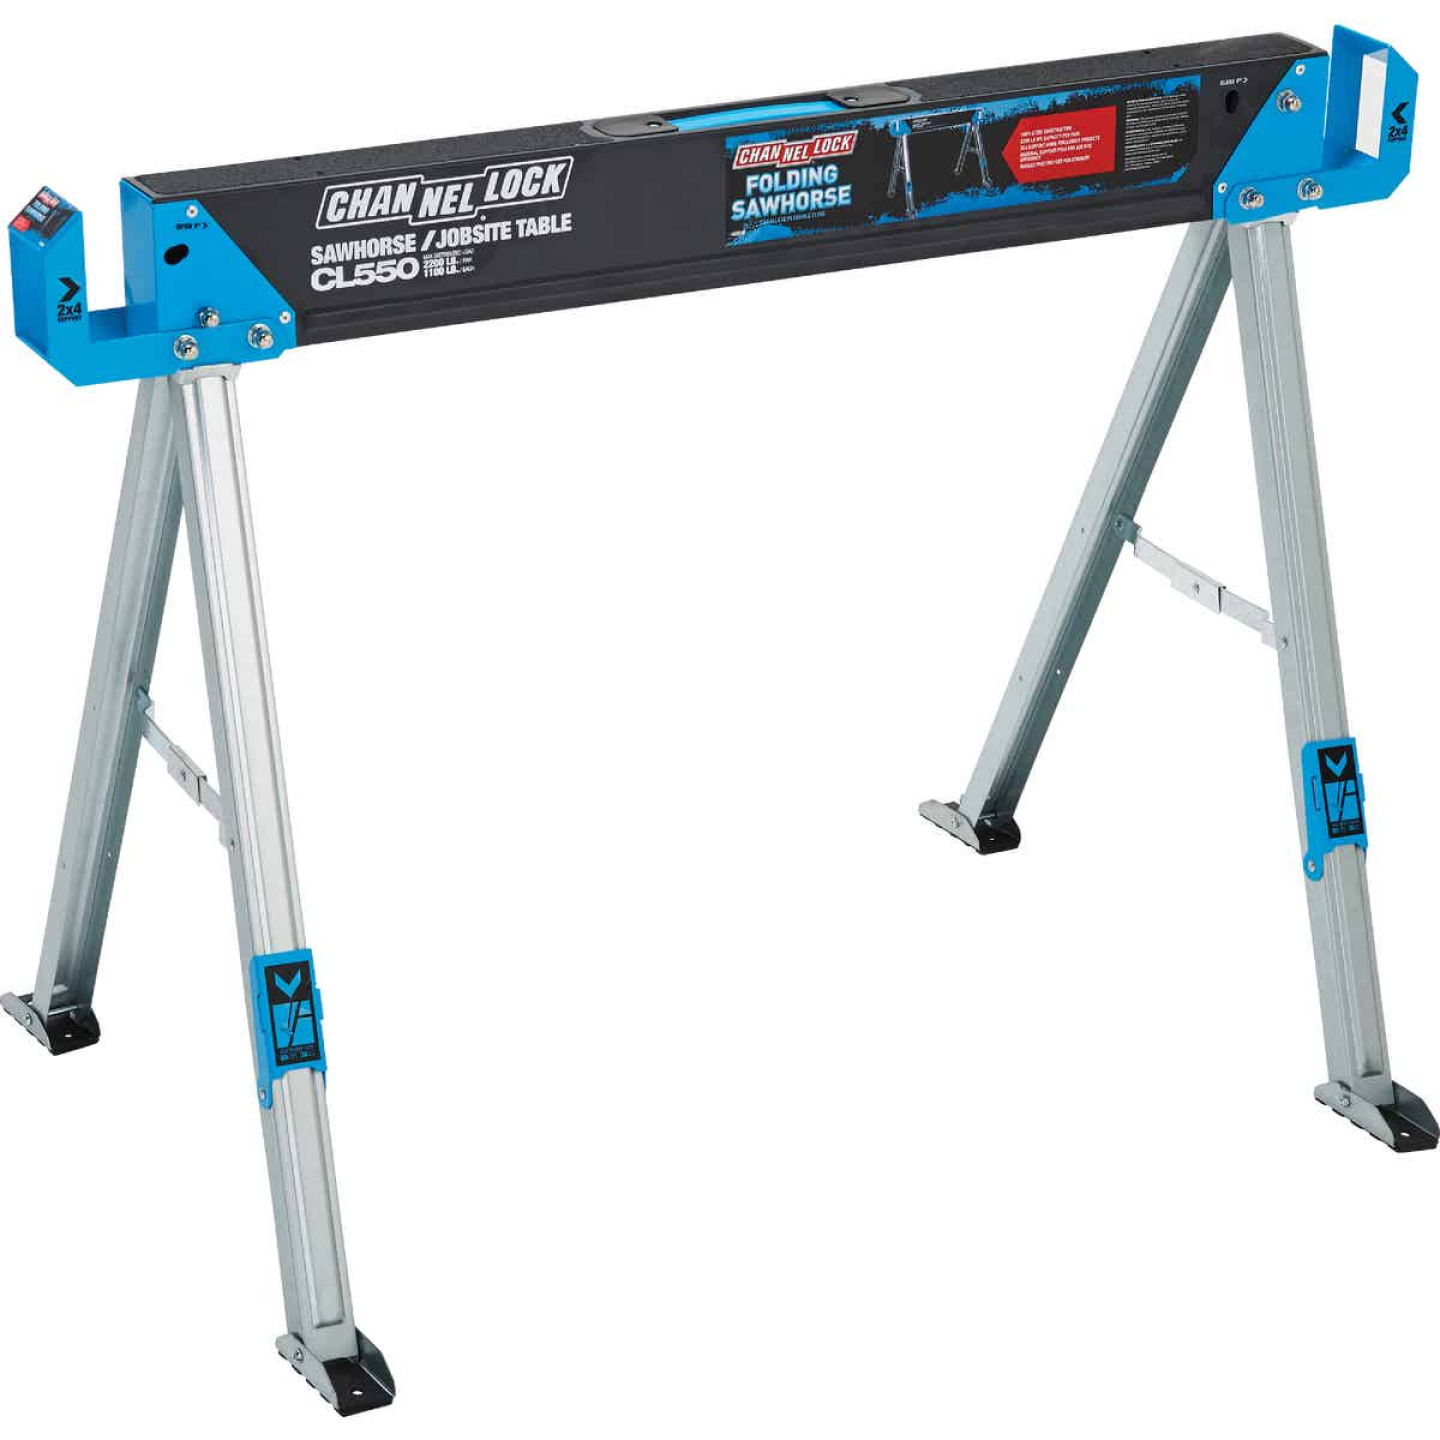 Channellock 46-1/2 In. L Steel Folding Sawhorse, 2200 Lb. Capacity Image 1